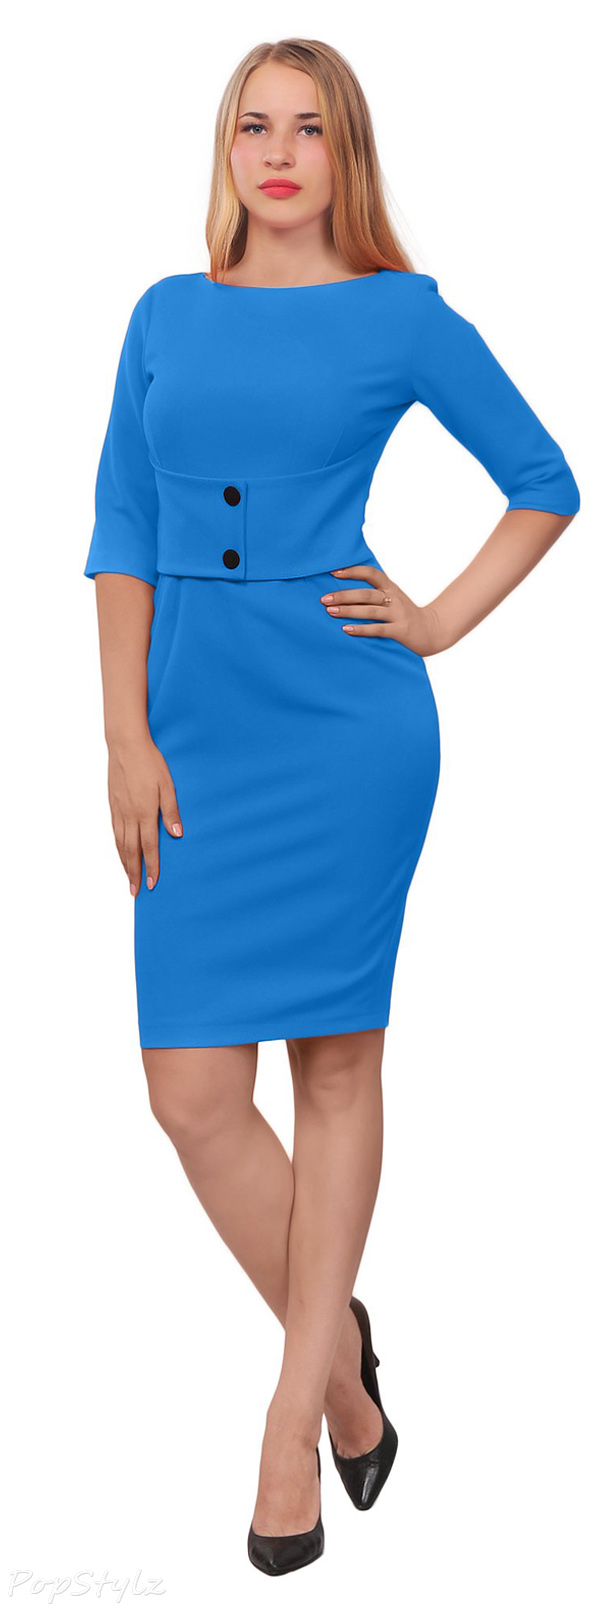 Marycrafts Classy Vintage 50s Wiggle Pencil Dress